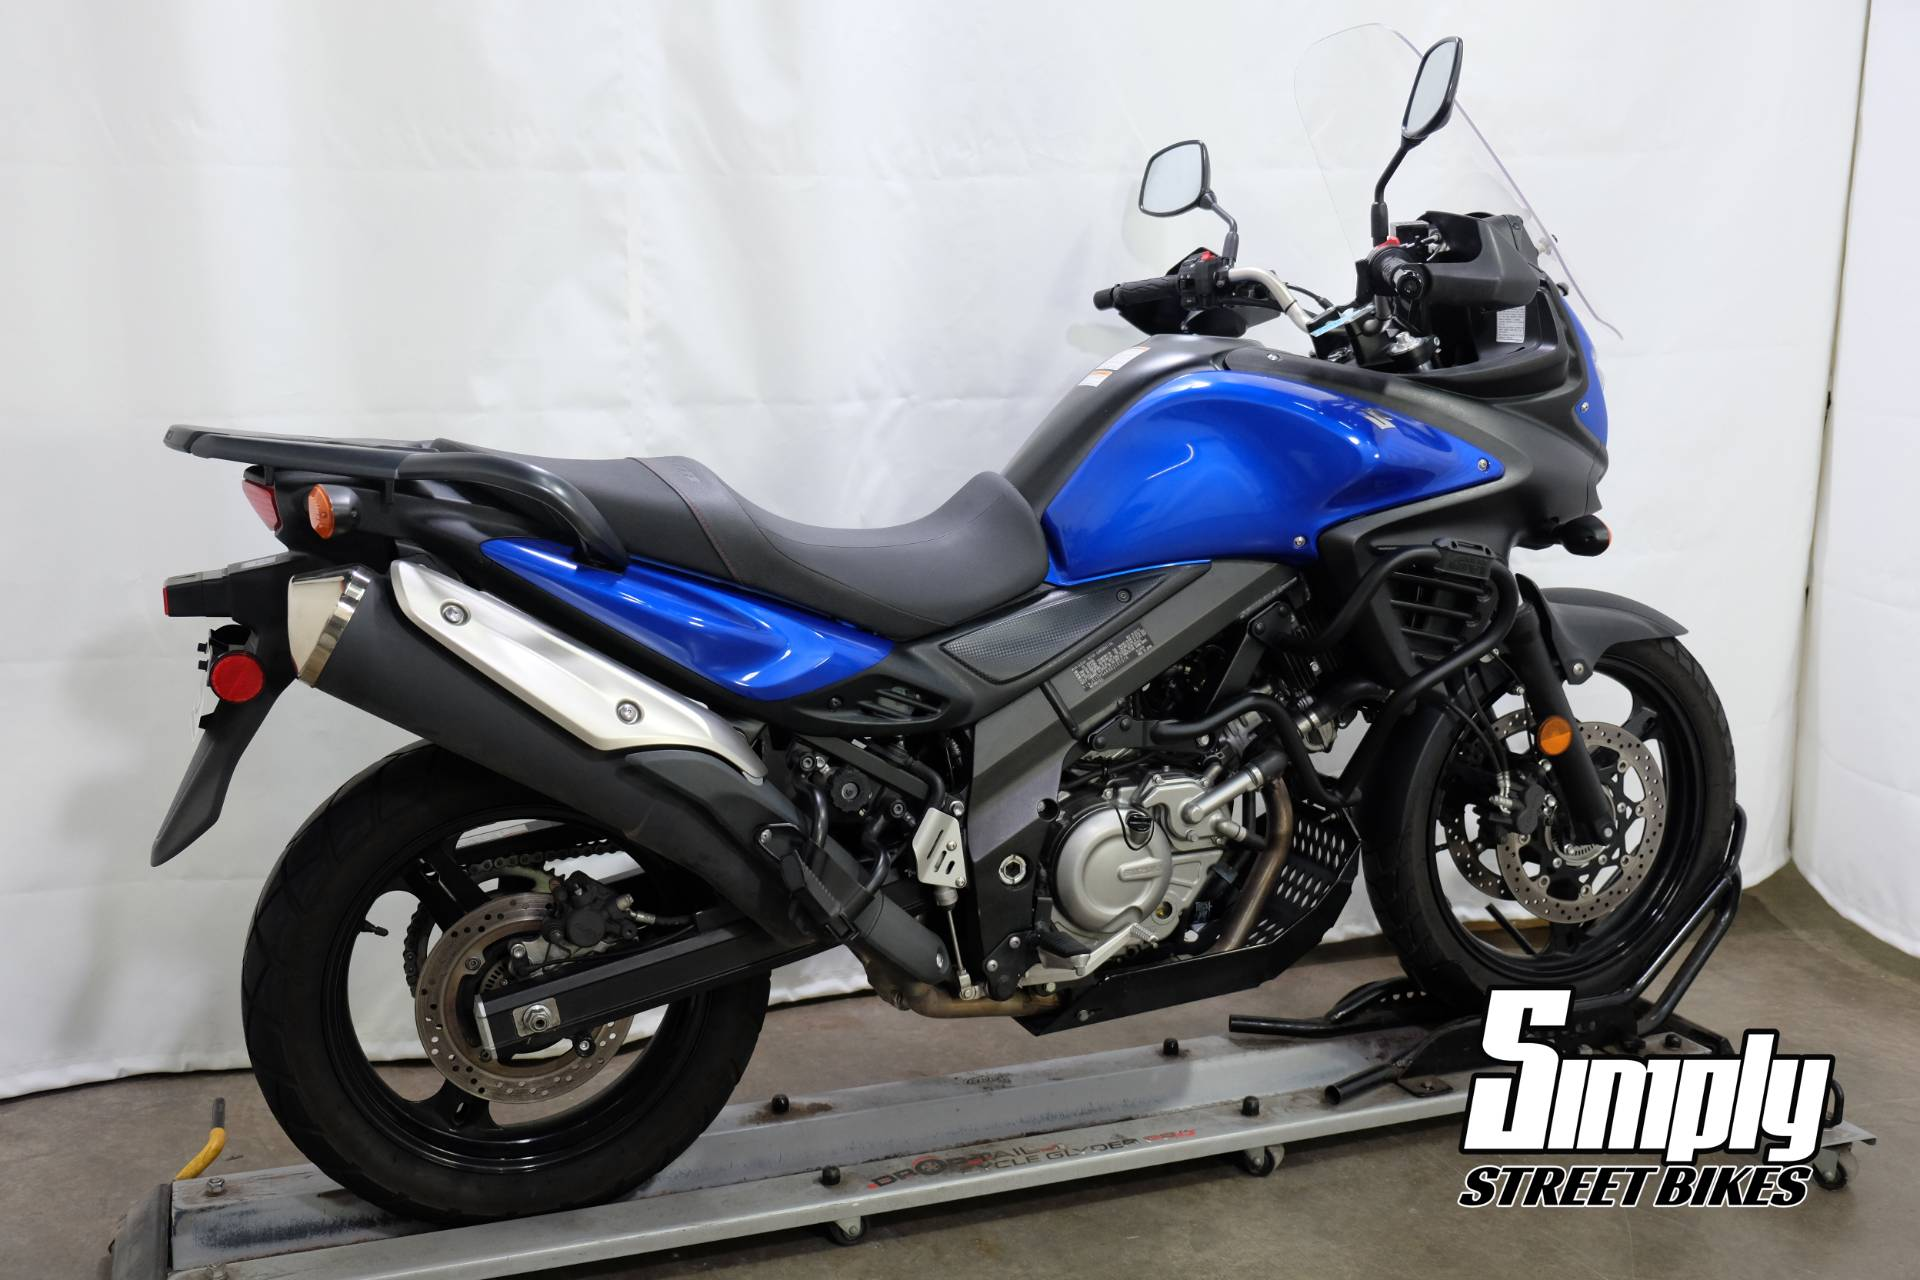 2013 Suzuki V-Strom 650 ABS in Eden Prairie, Minnesota - Photo 8